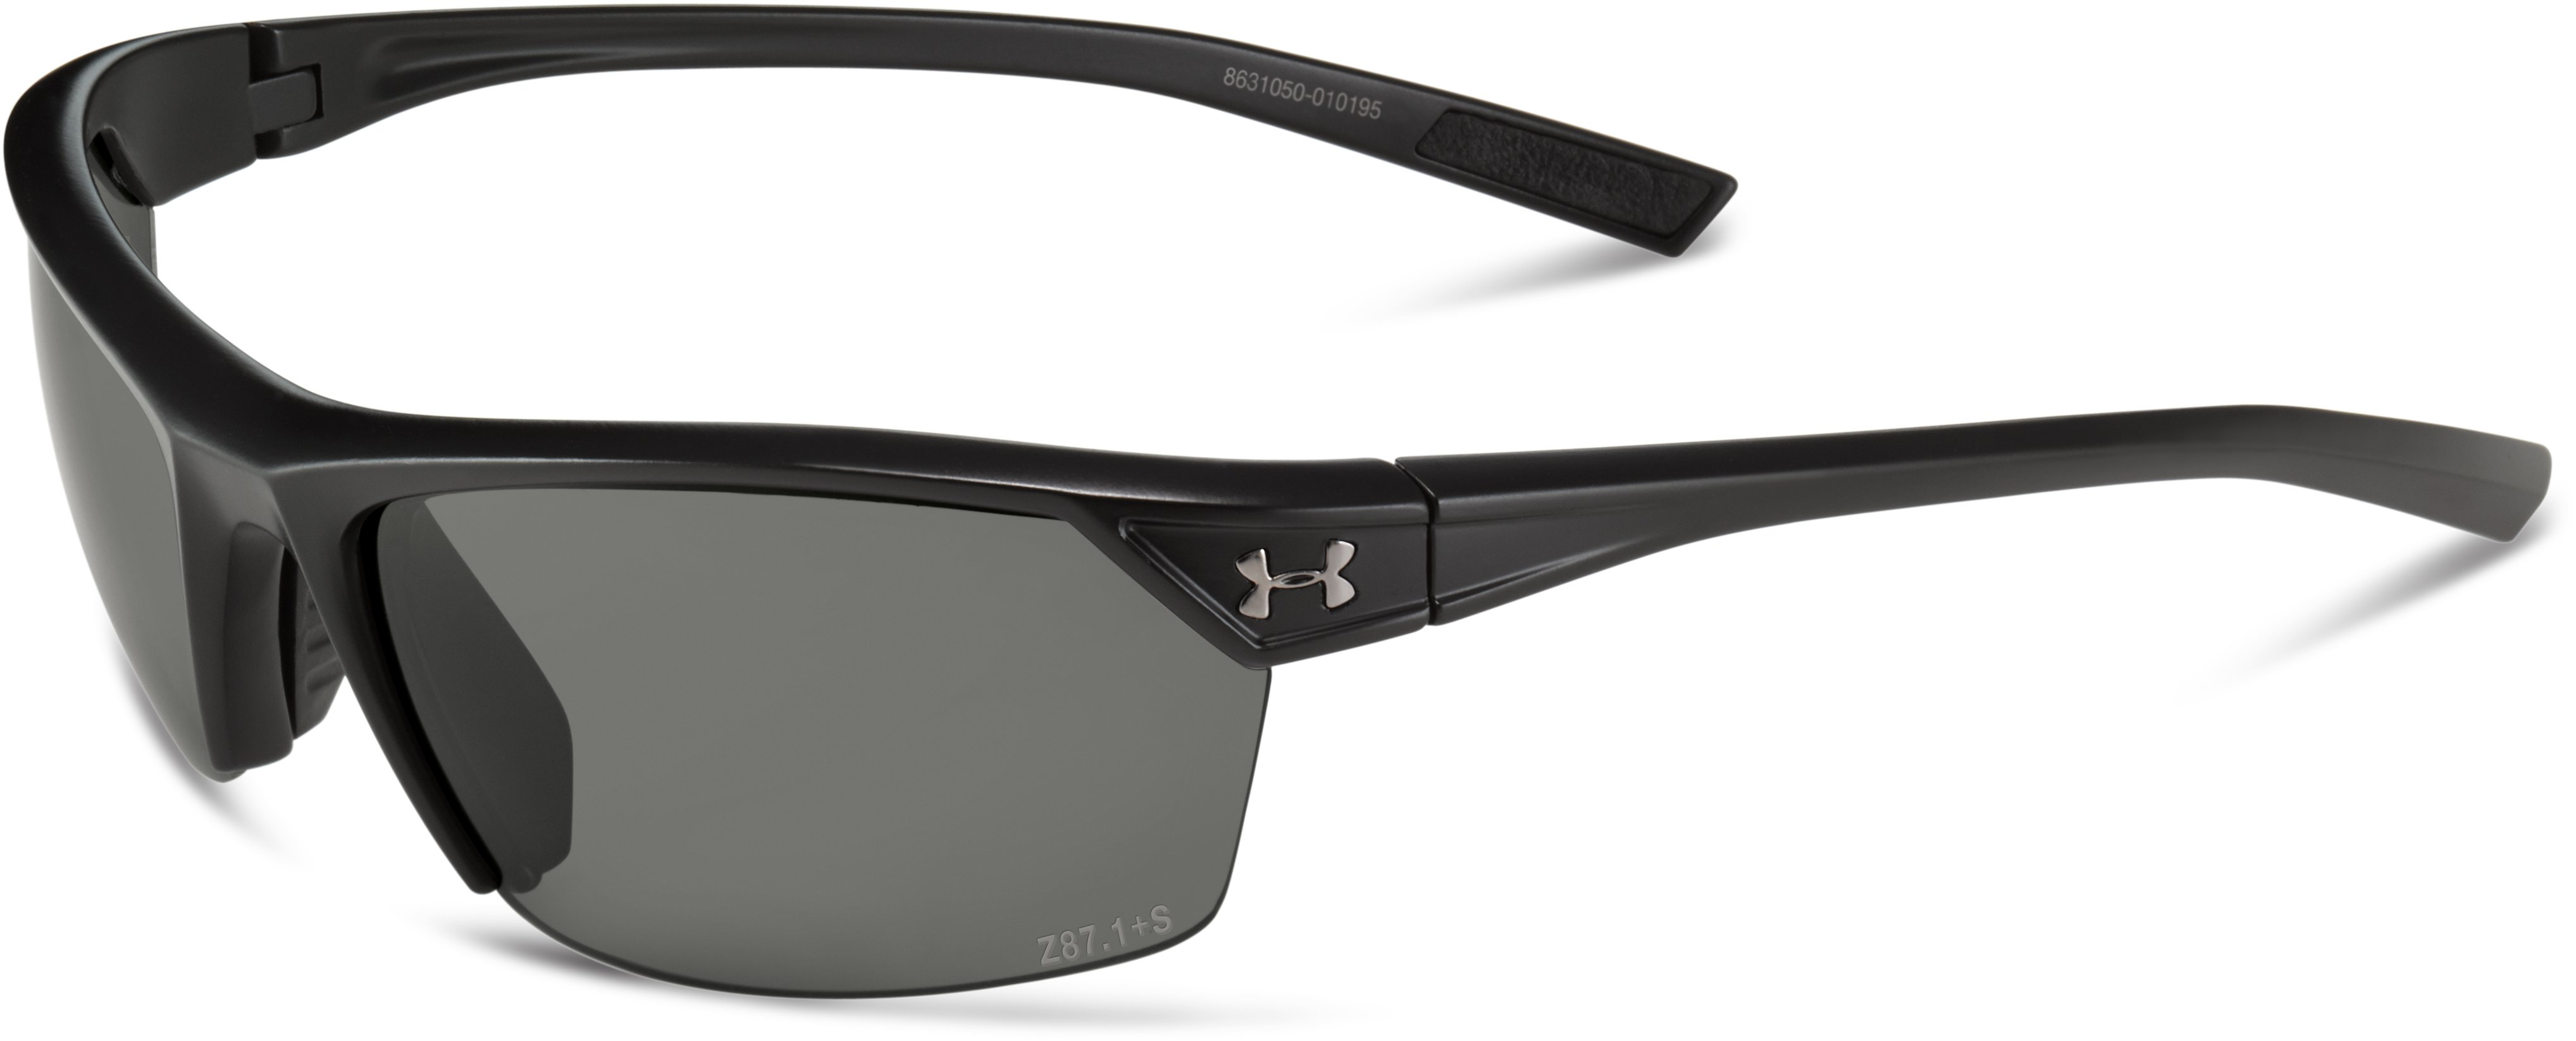 UA Zone 2.0 Interchange WWP Sunglasses, Satin Black